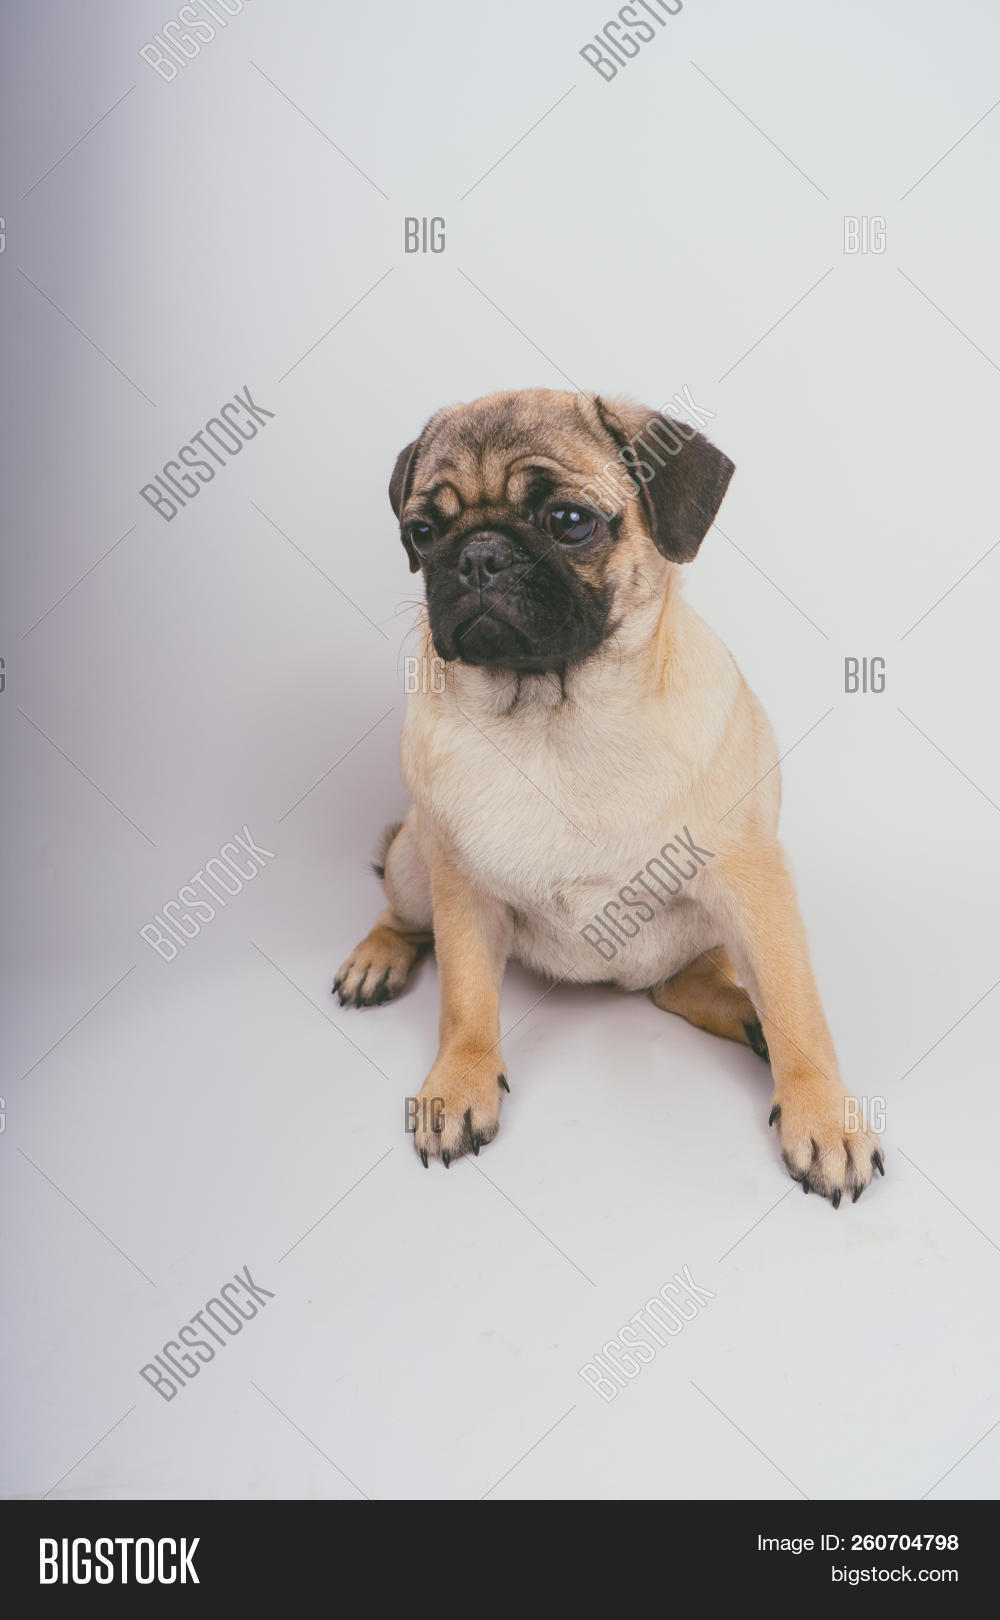 Funny Pug Puppy On Image Photo Free Trial Bigstock